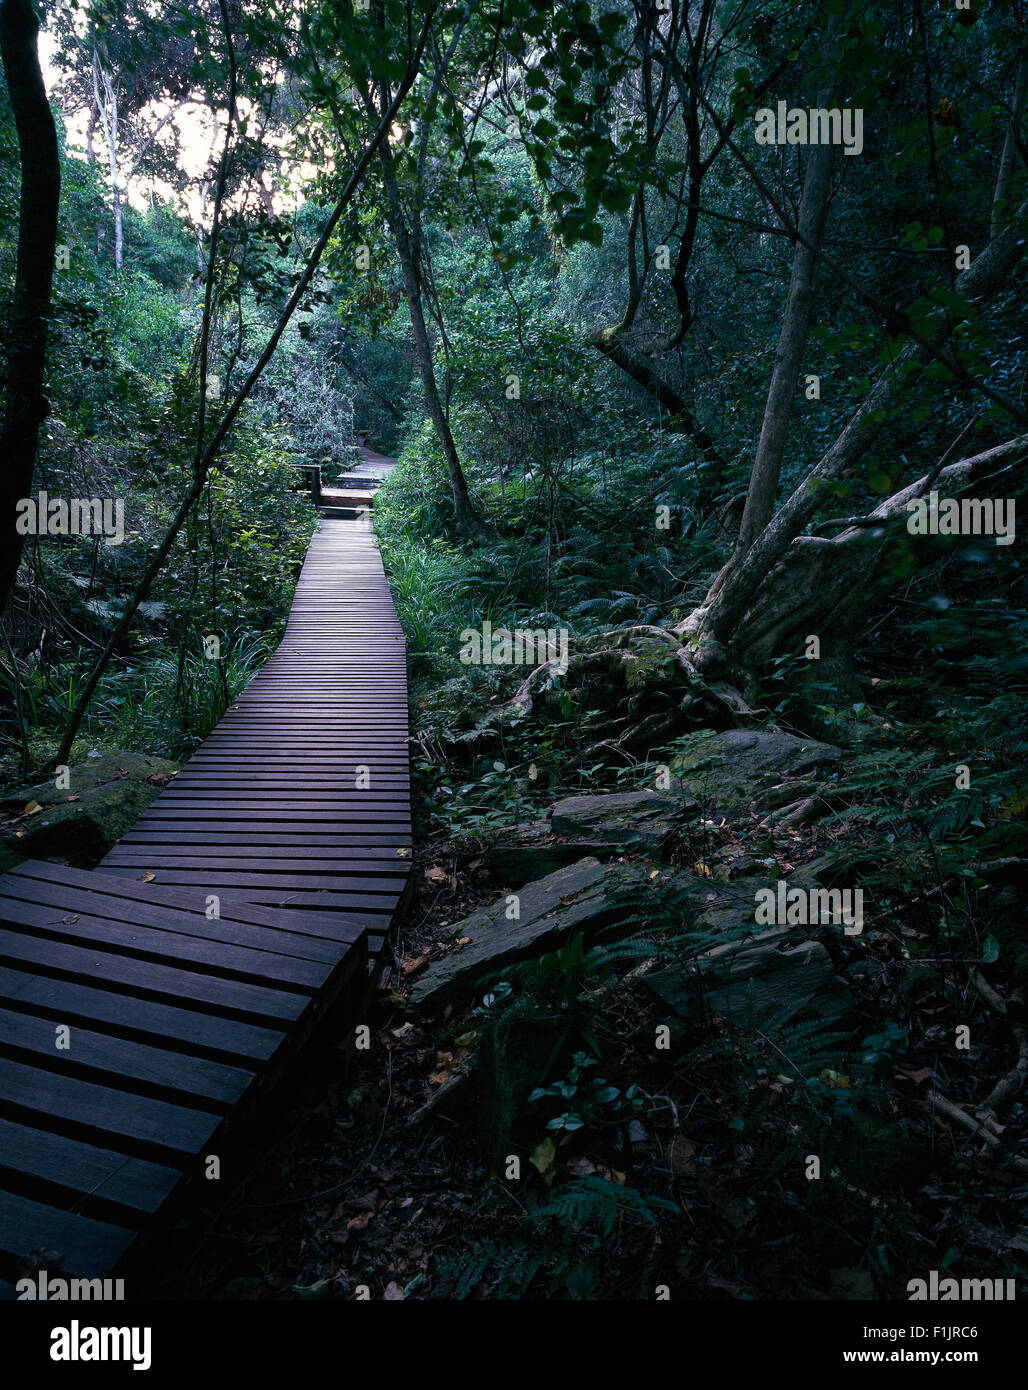 Wooden Walkway through Forest Storm's River Mouth, South Africa - Stock Image